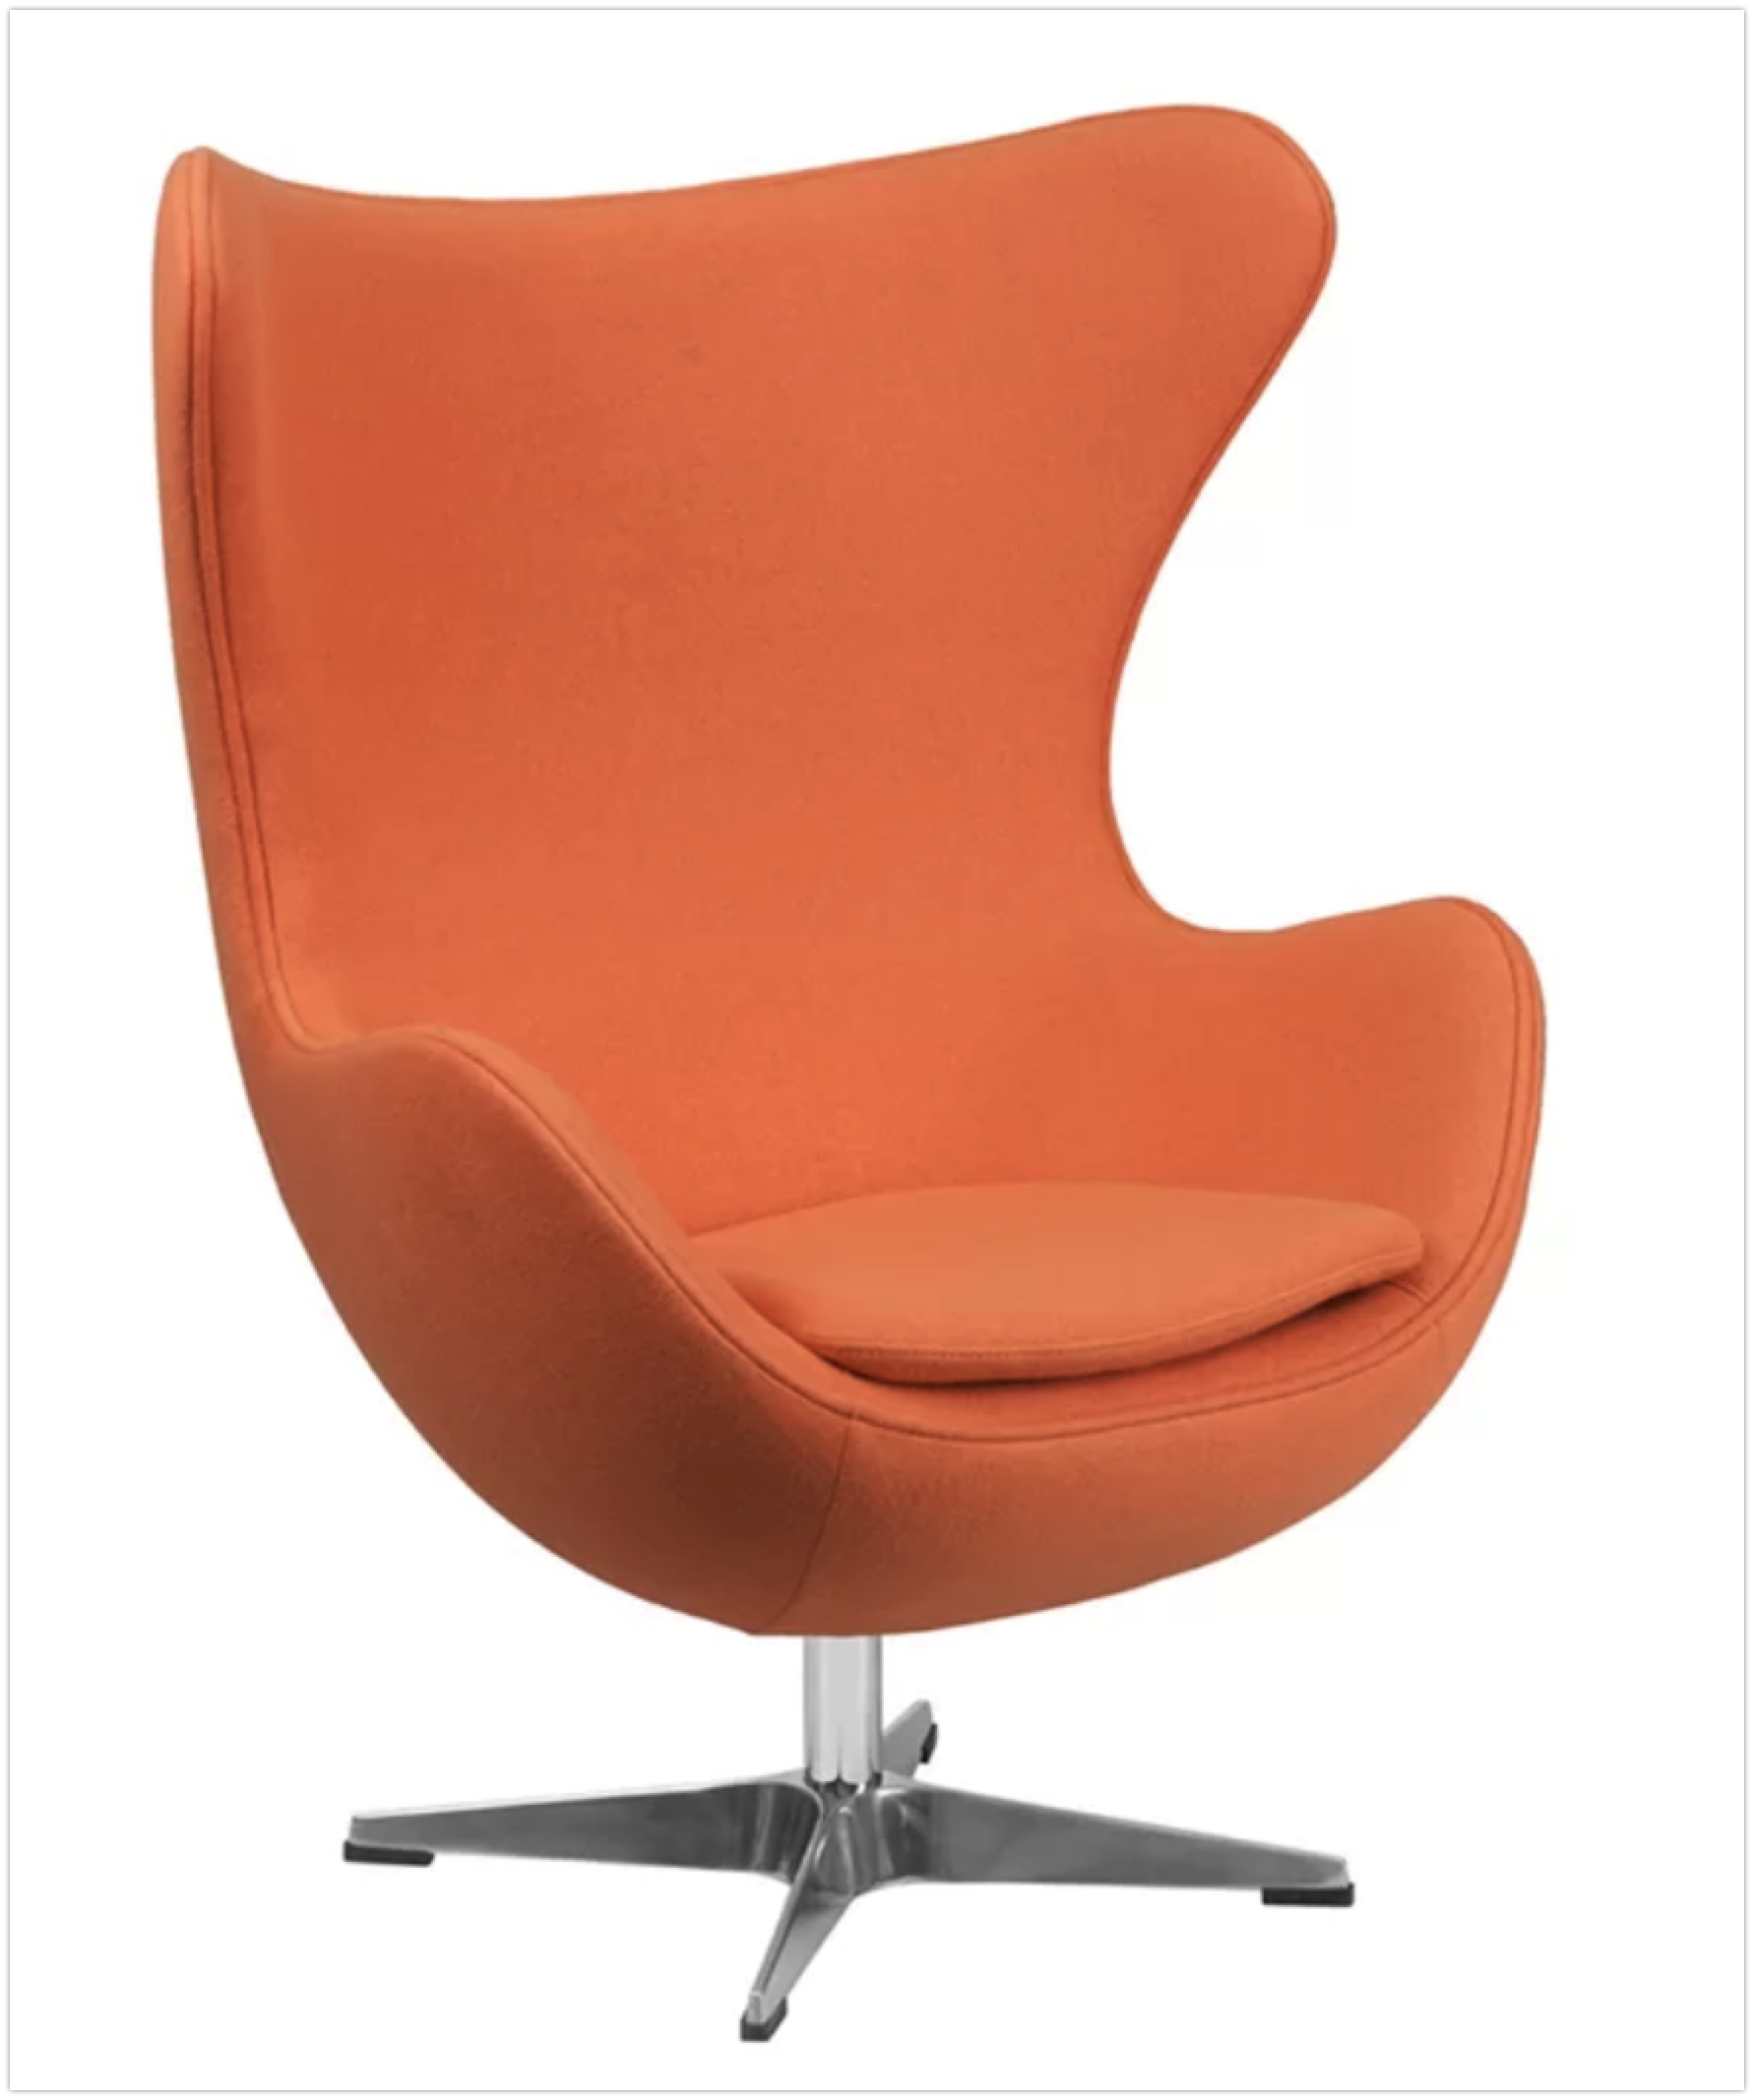 brayden-studio-siegle-lounge-chair